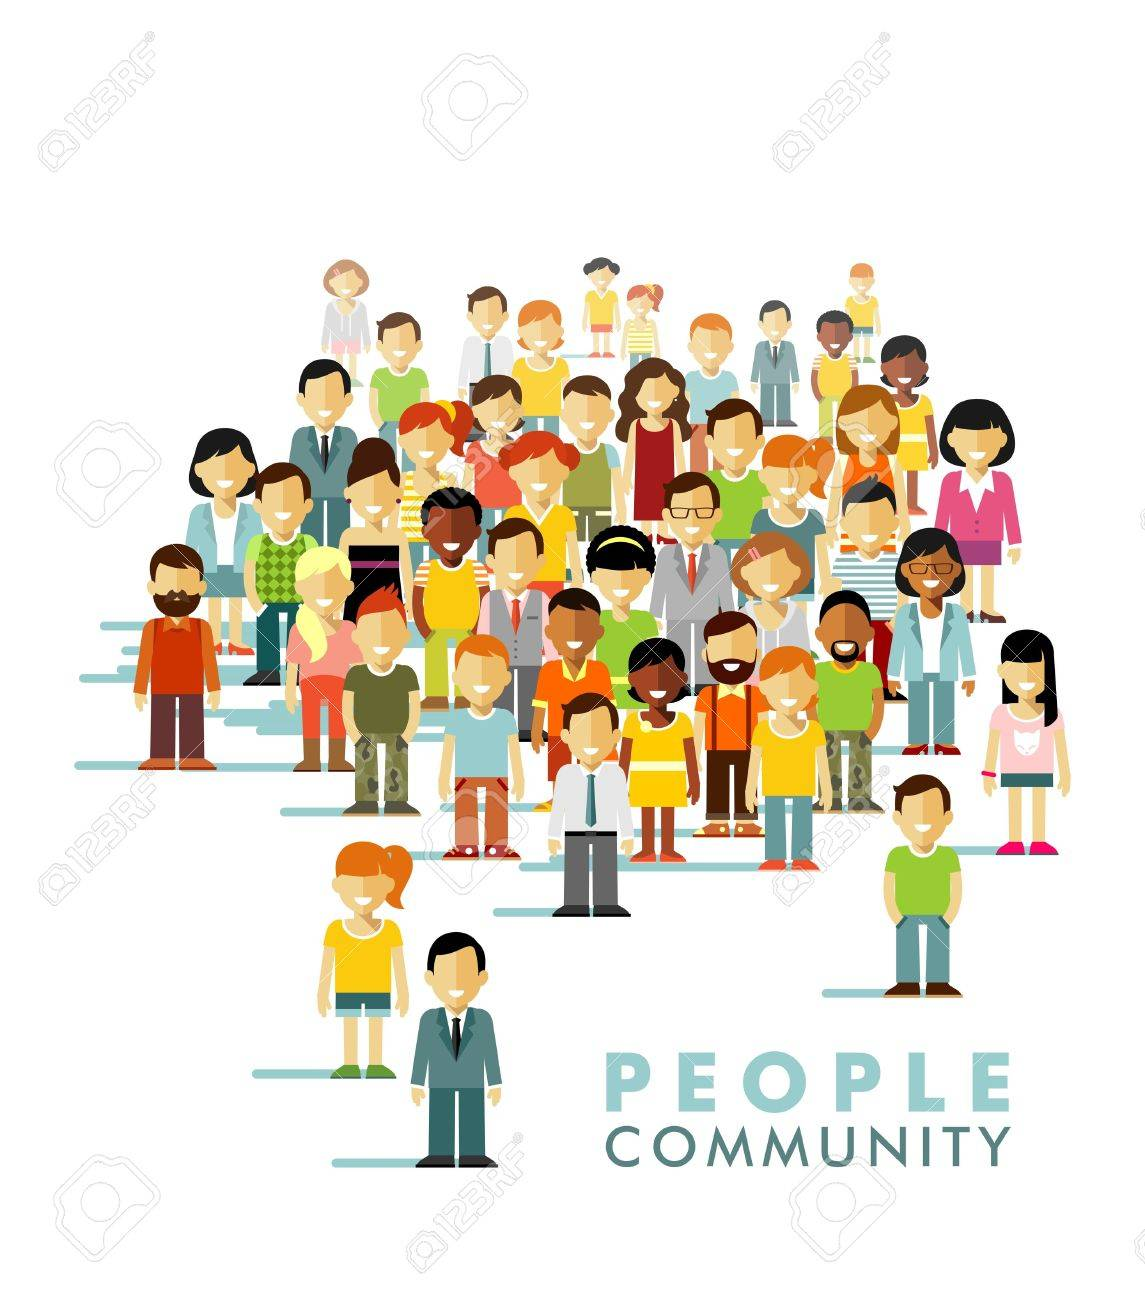 Group of different people in community isolated on white background Stock Vector - 49255200